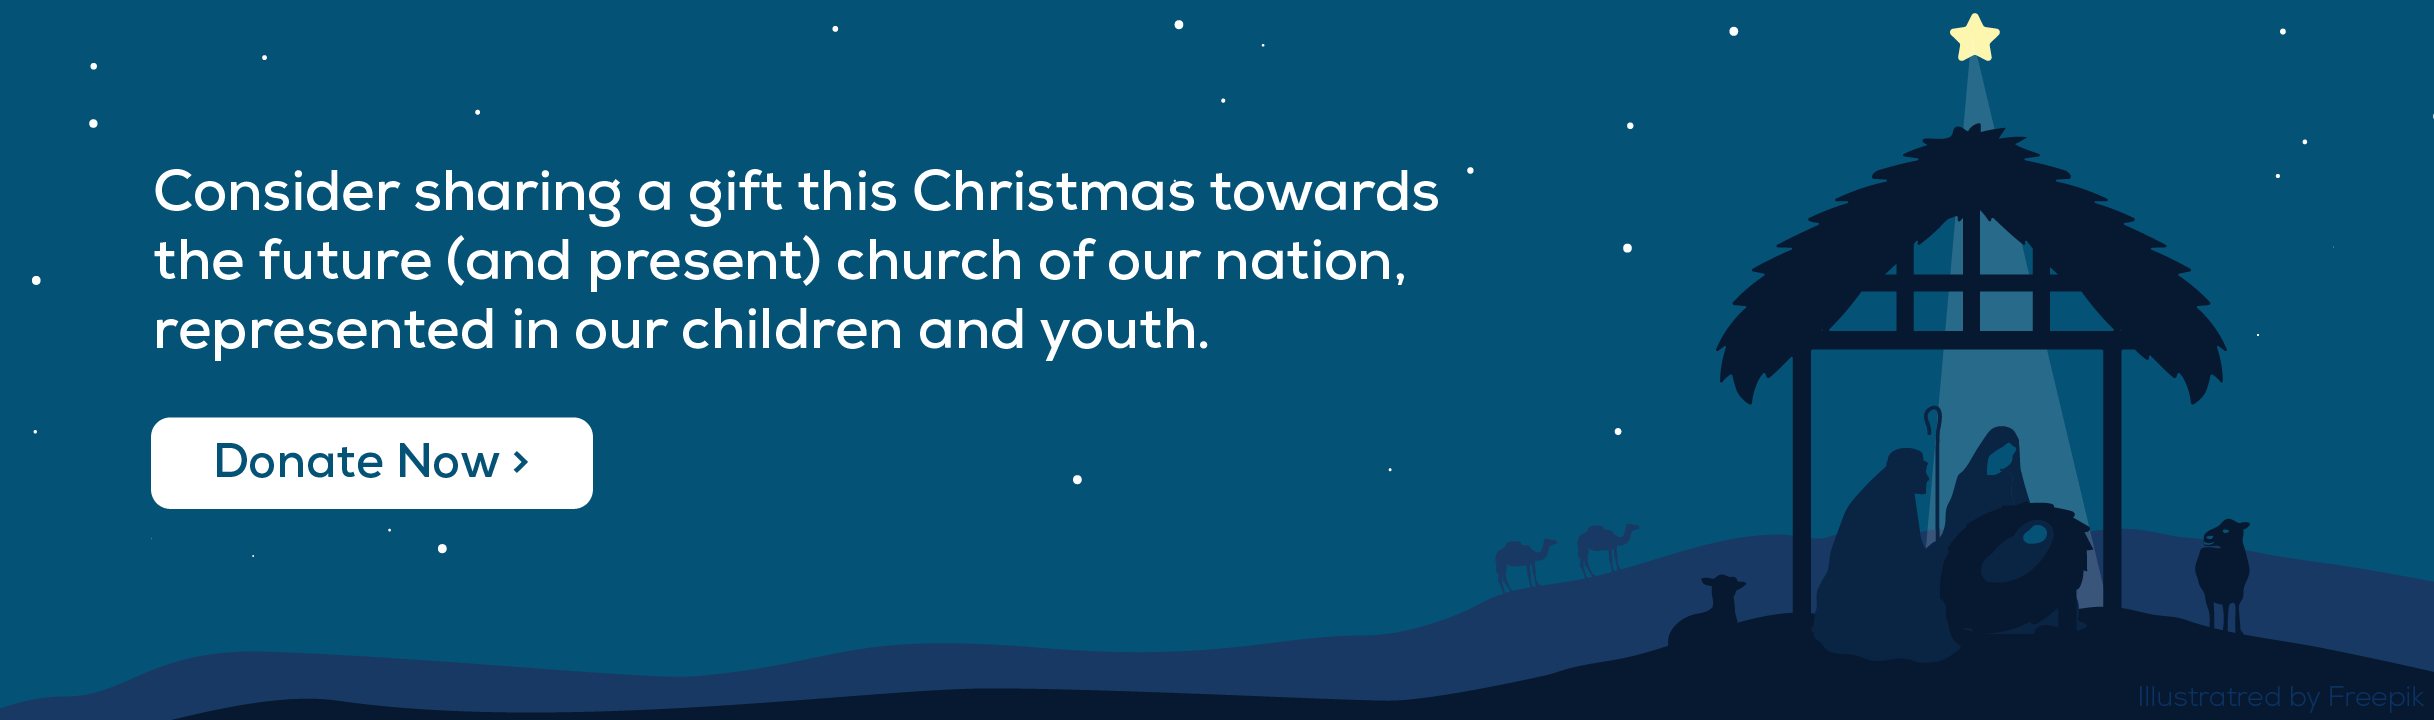 Consider sharing a gift this Christmas towards the future (and present) church of our nation, represented in our children and youth. Click here to donate now.